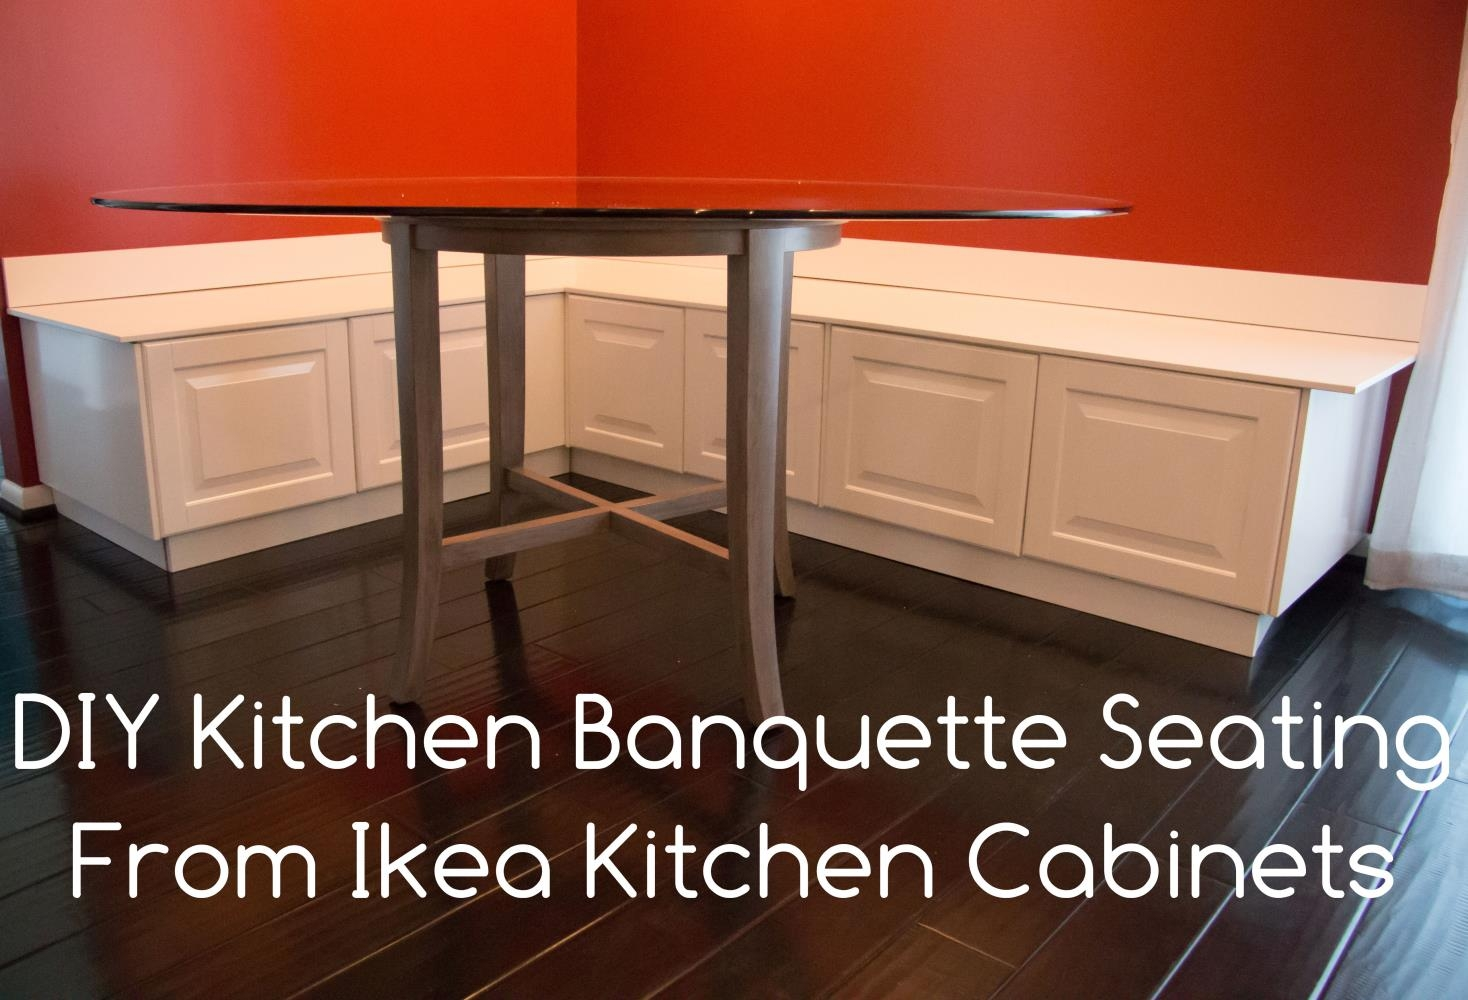 Diy Kitchen Banquette Bench Using Ikea Cabinets Ikea Hacks